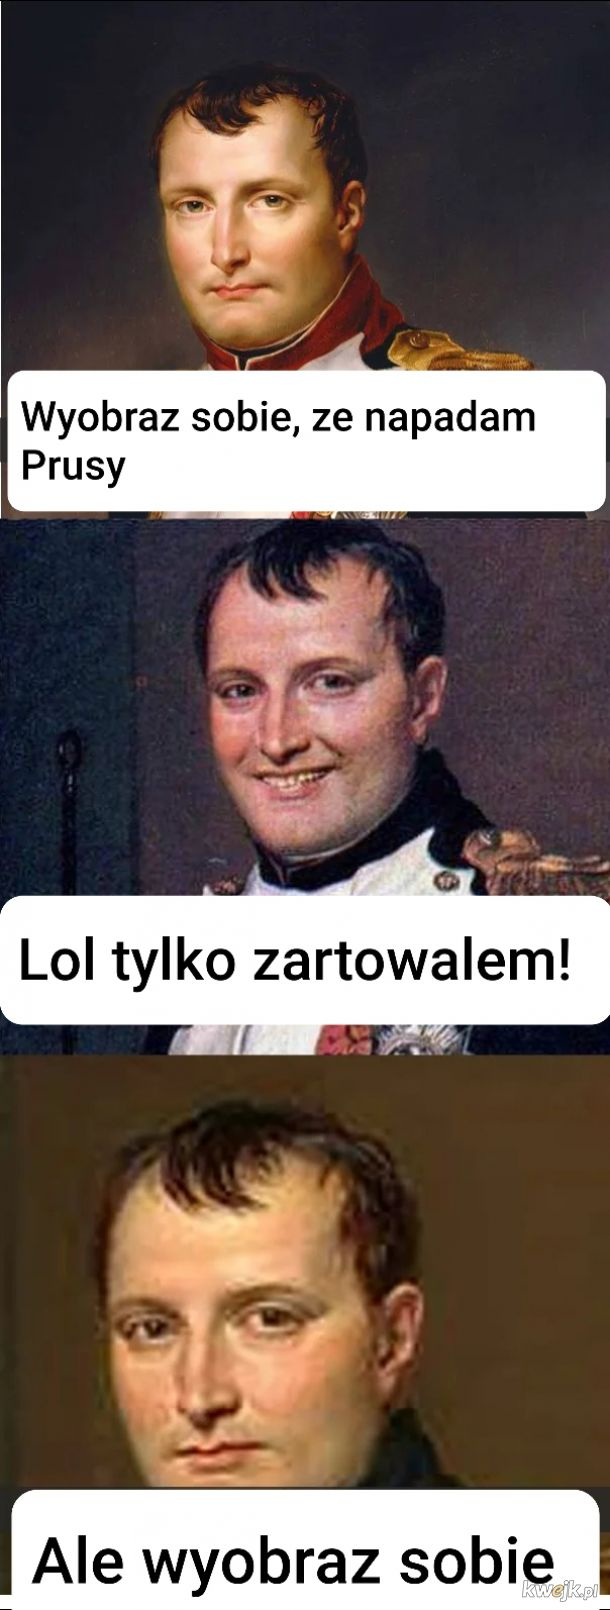 Just Napoleon things...